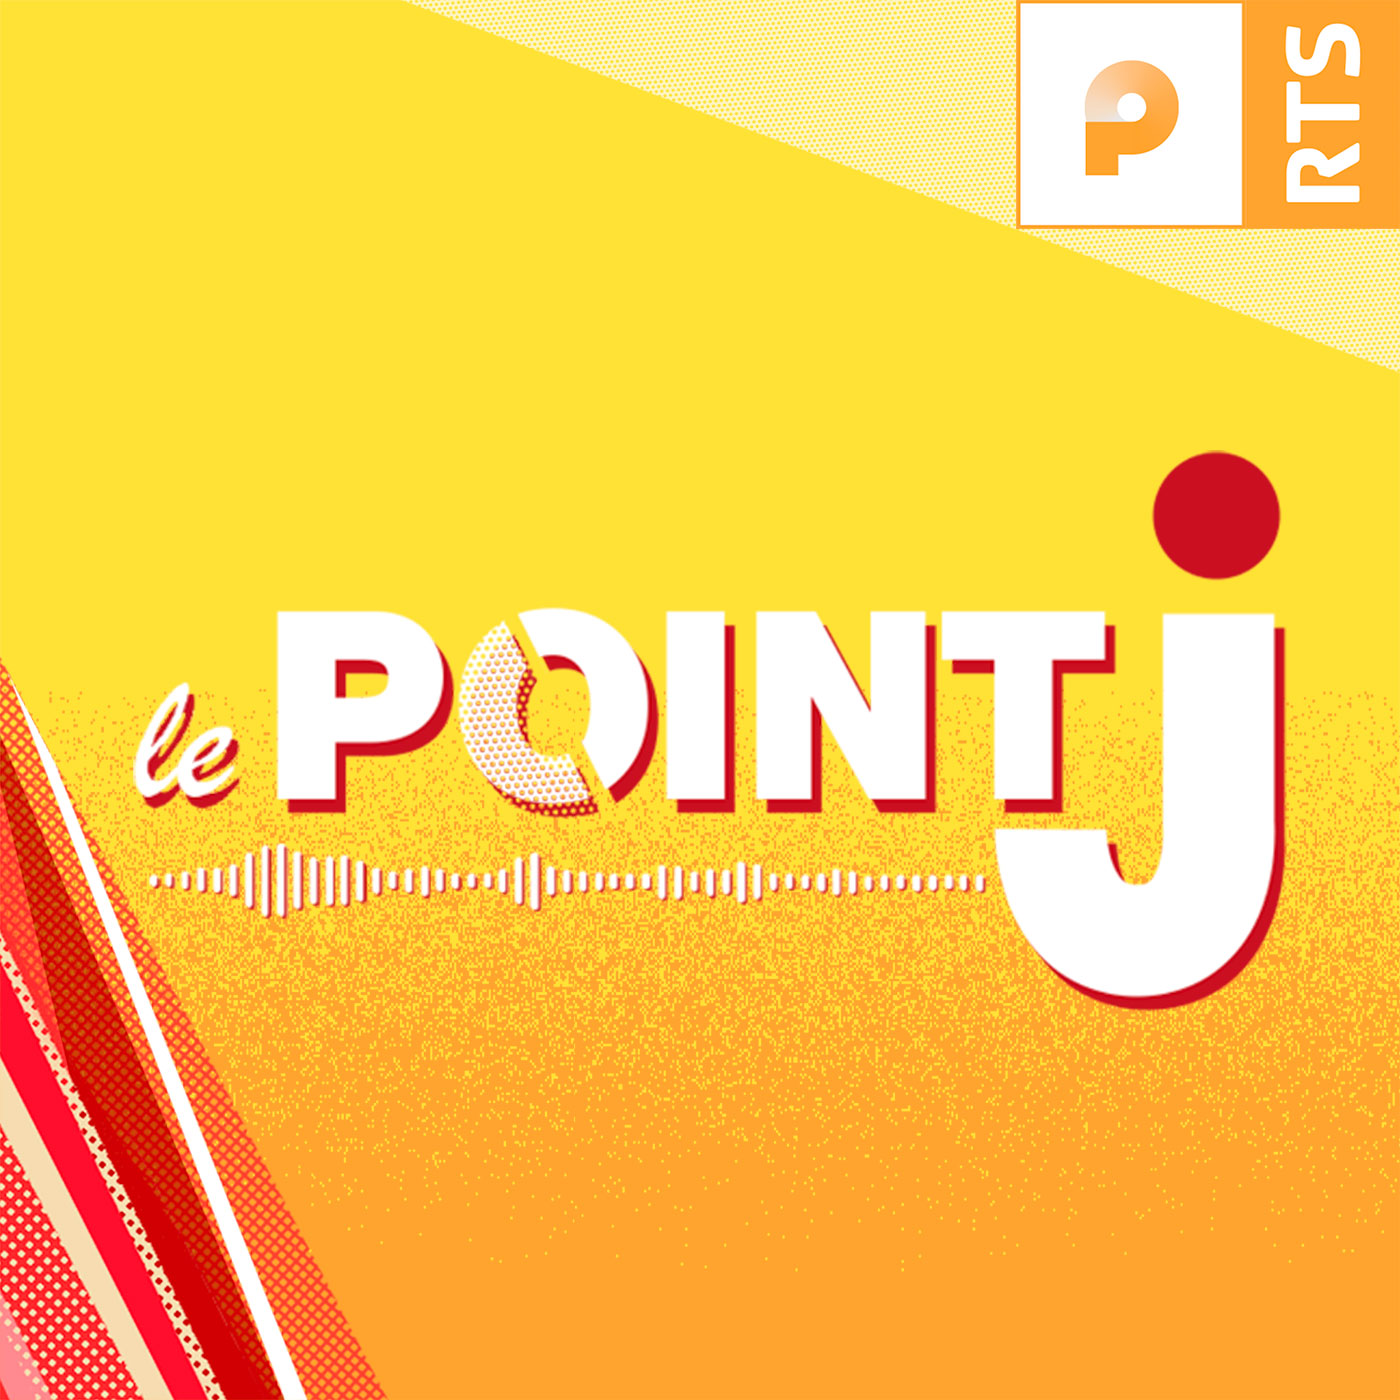 Le point J (logo podcast)